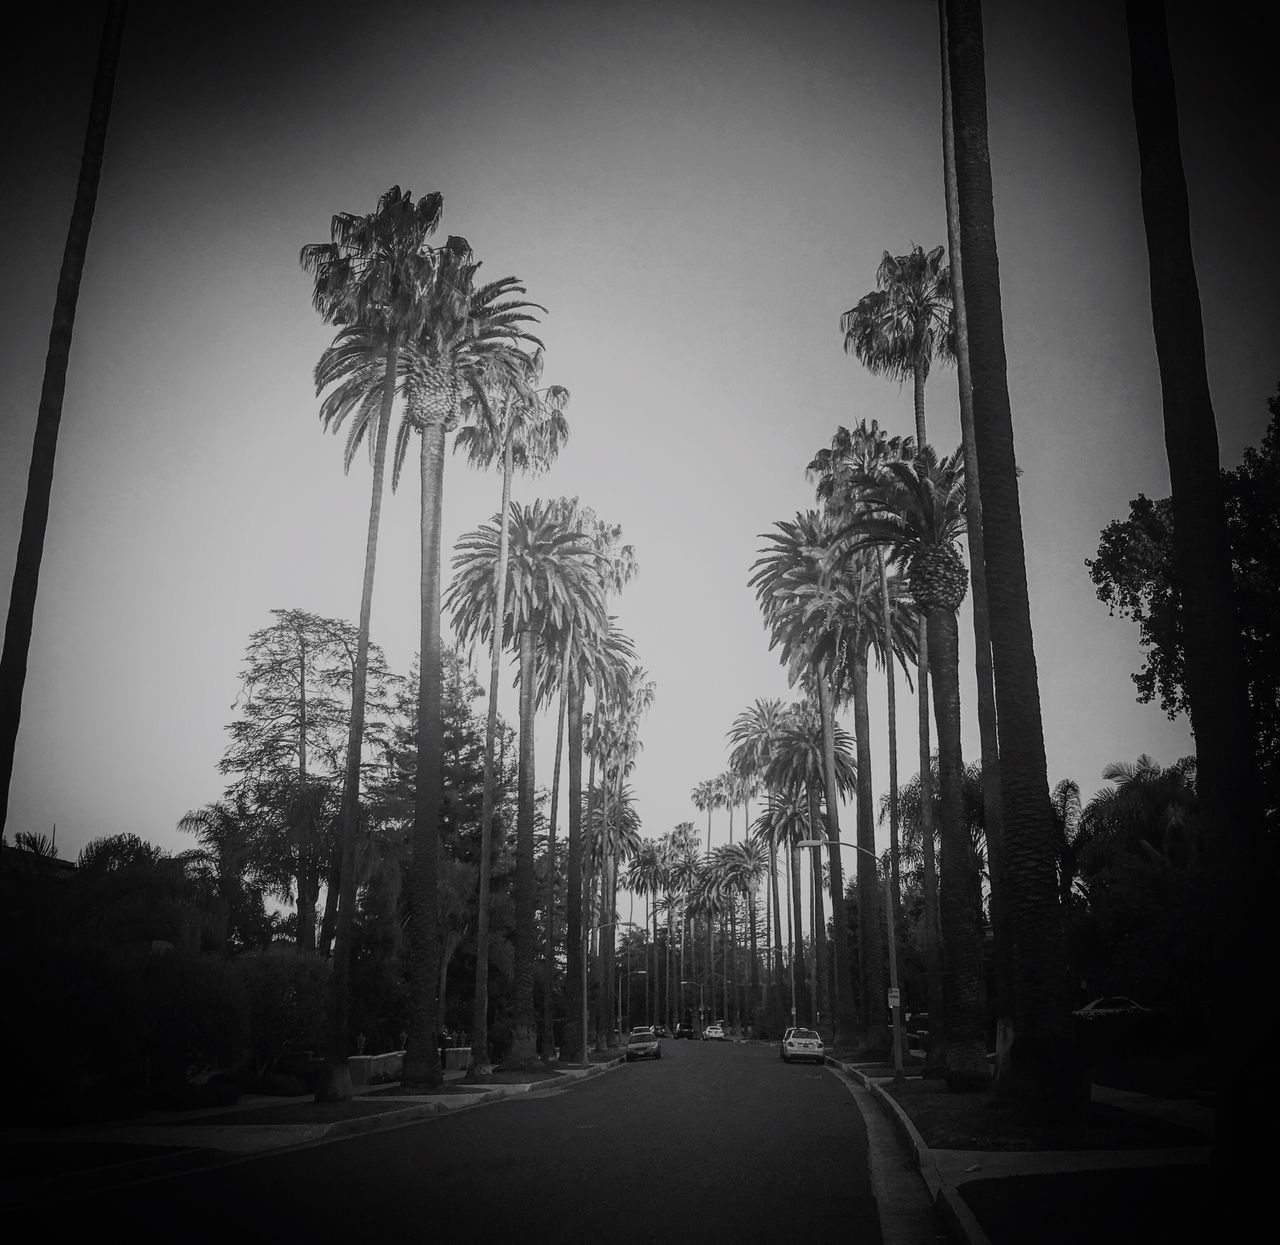 Black And White Beverly Hills California Palm Trees Residental Street Road Avenue Homes Iphone 6 Plus Iphone6plus Los Ángeles Street Wide Sunset Parked Cars Quiet Street Afternoon Lawns Tall Palm Trees Tall Palm Tree Outside Street Photography Getty Images Parisa Carello Neighborhood Map